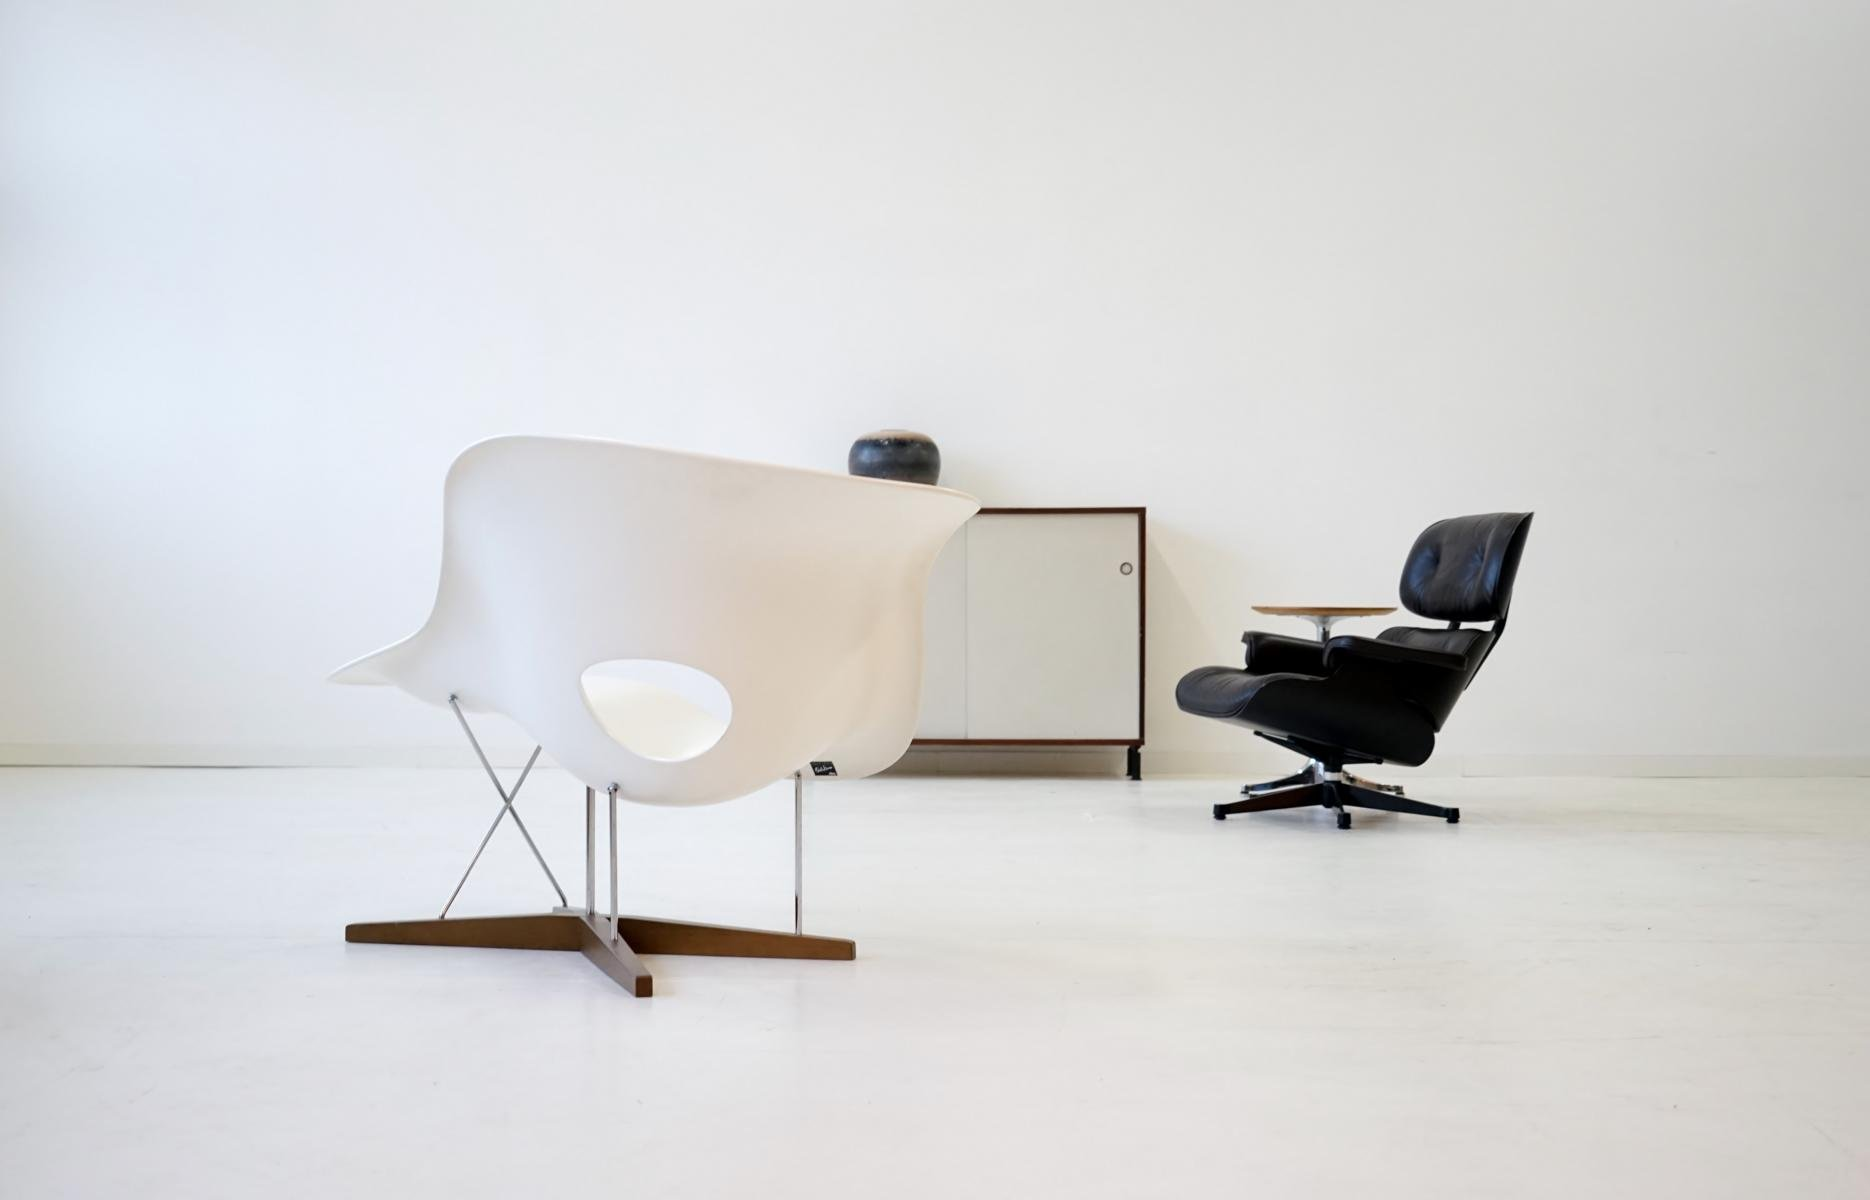 Chaises Originales Pas Cheres Chaise Design Eames Pas Cher Interesting Distingu Chaises